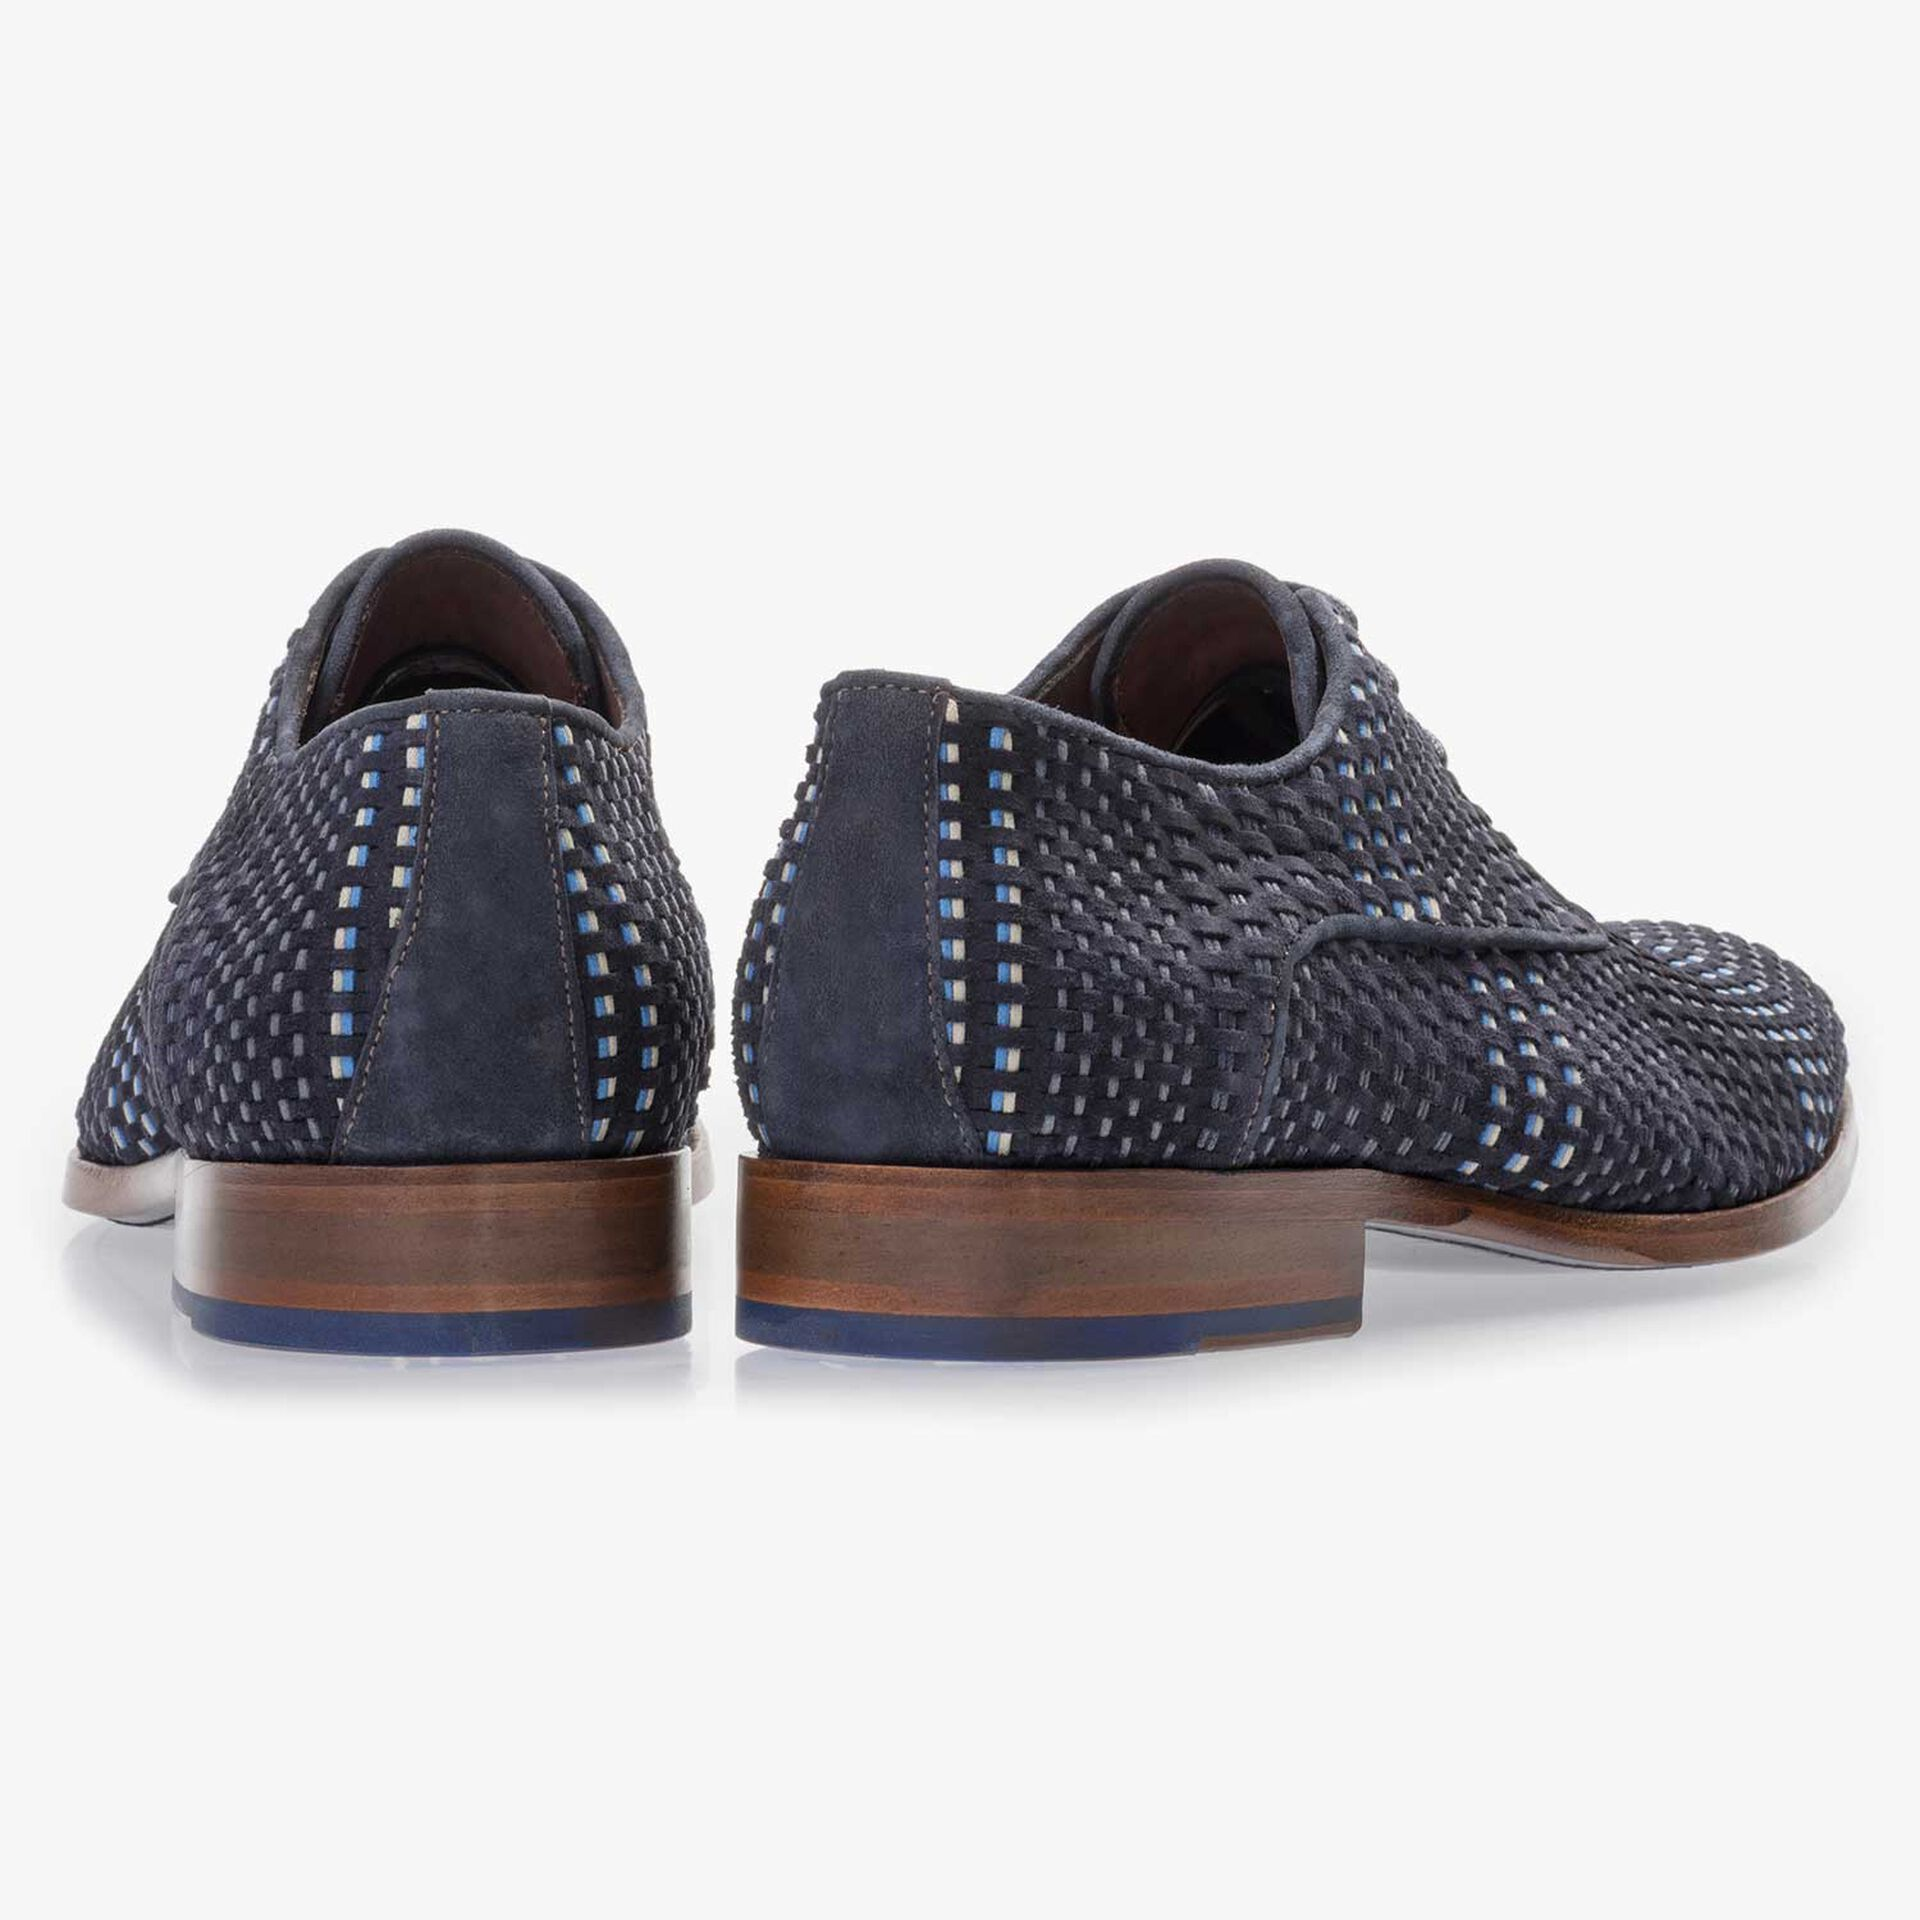 Dark blue lace shoe made of braided leather